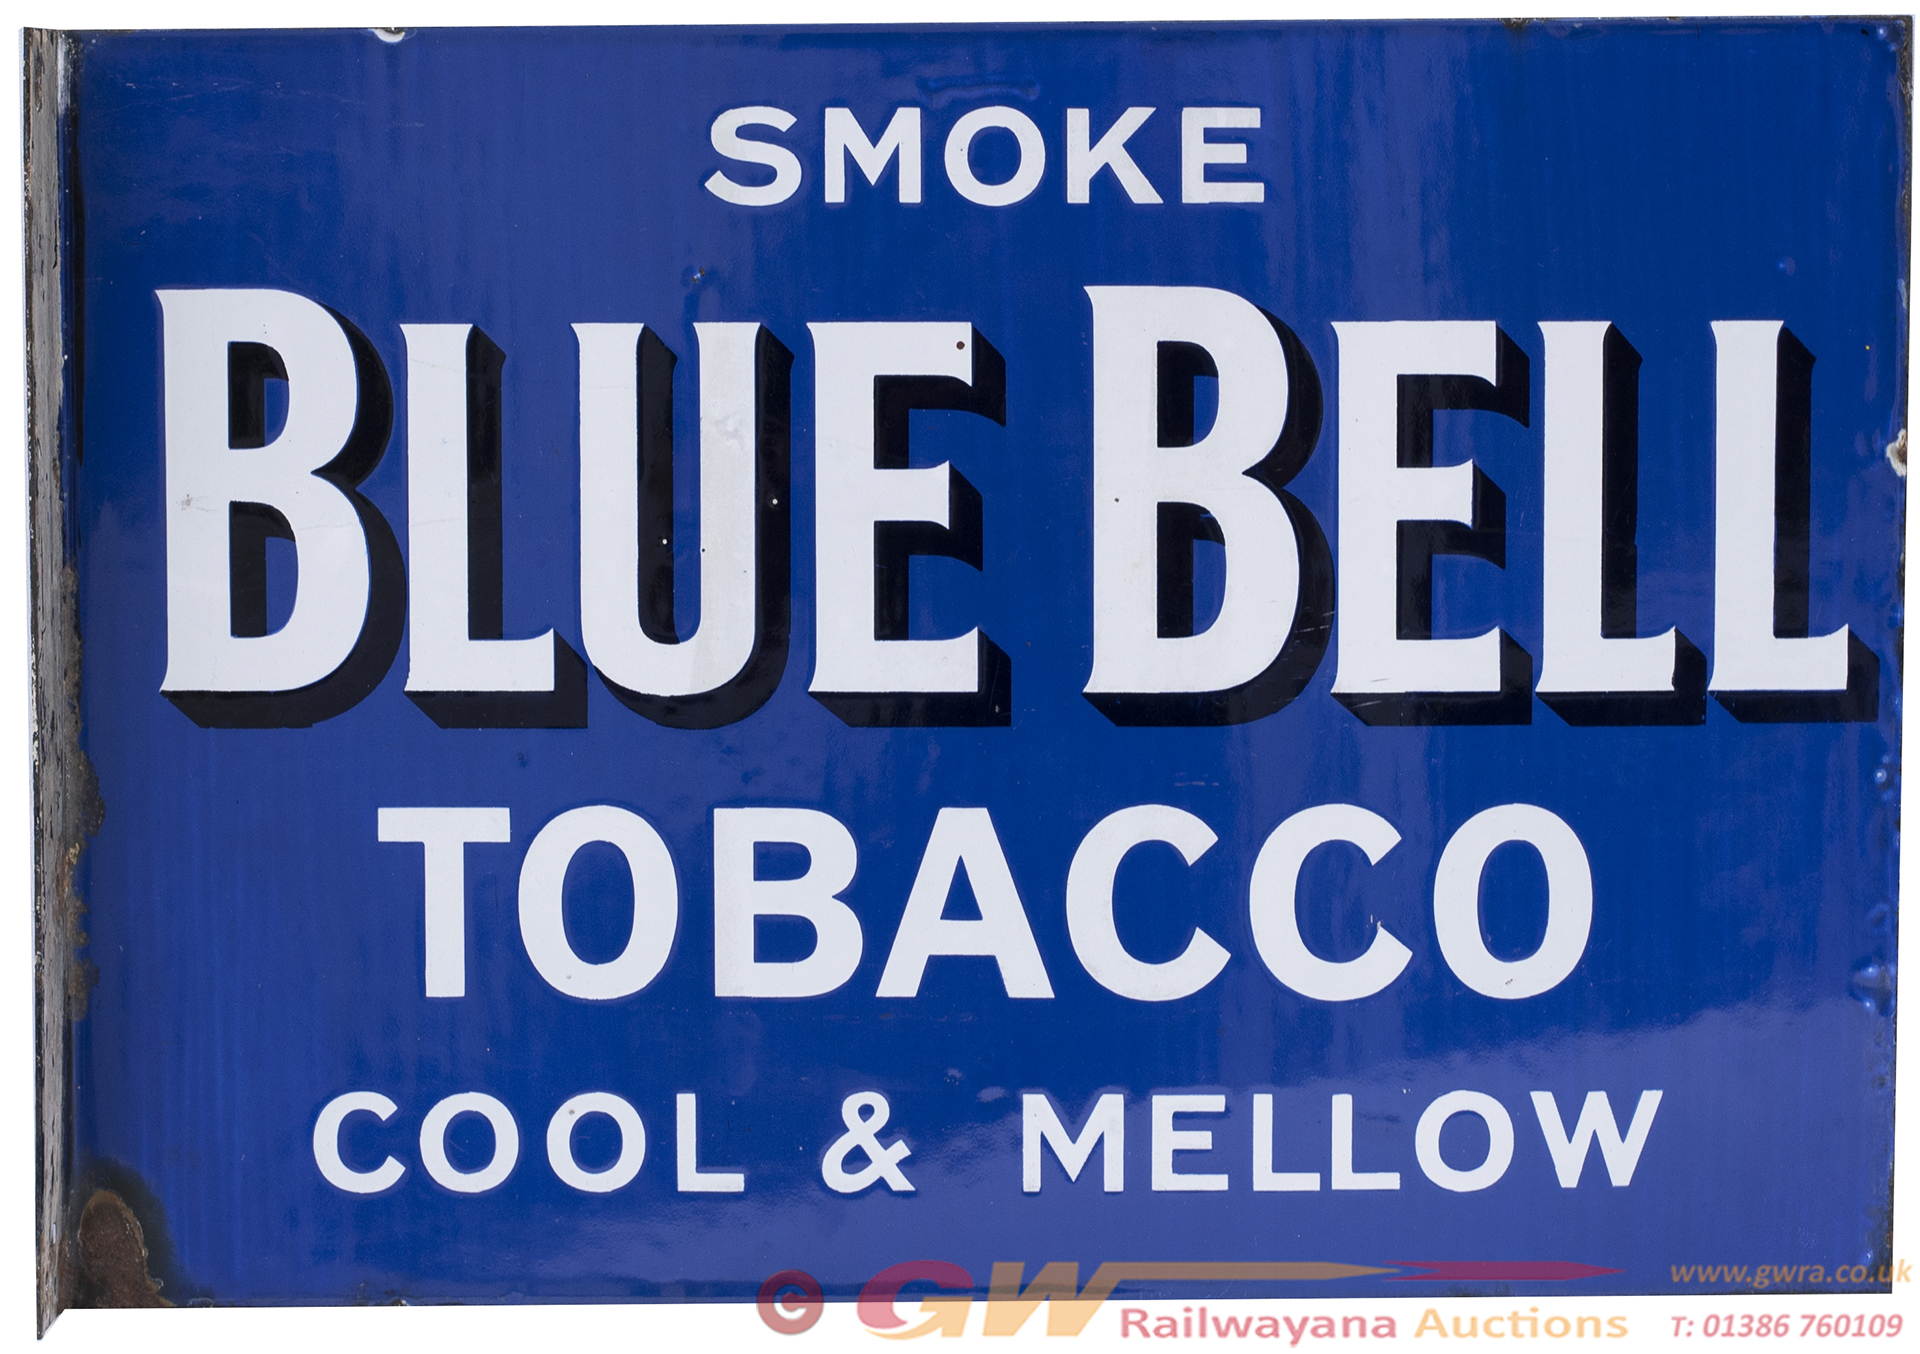 Advertising Enamel Sign SMOKE BLUE BELL TOBACCO